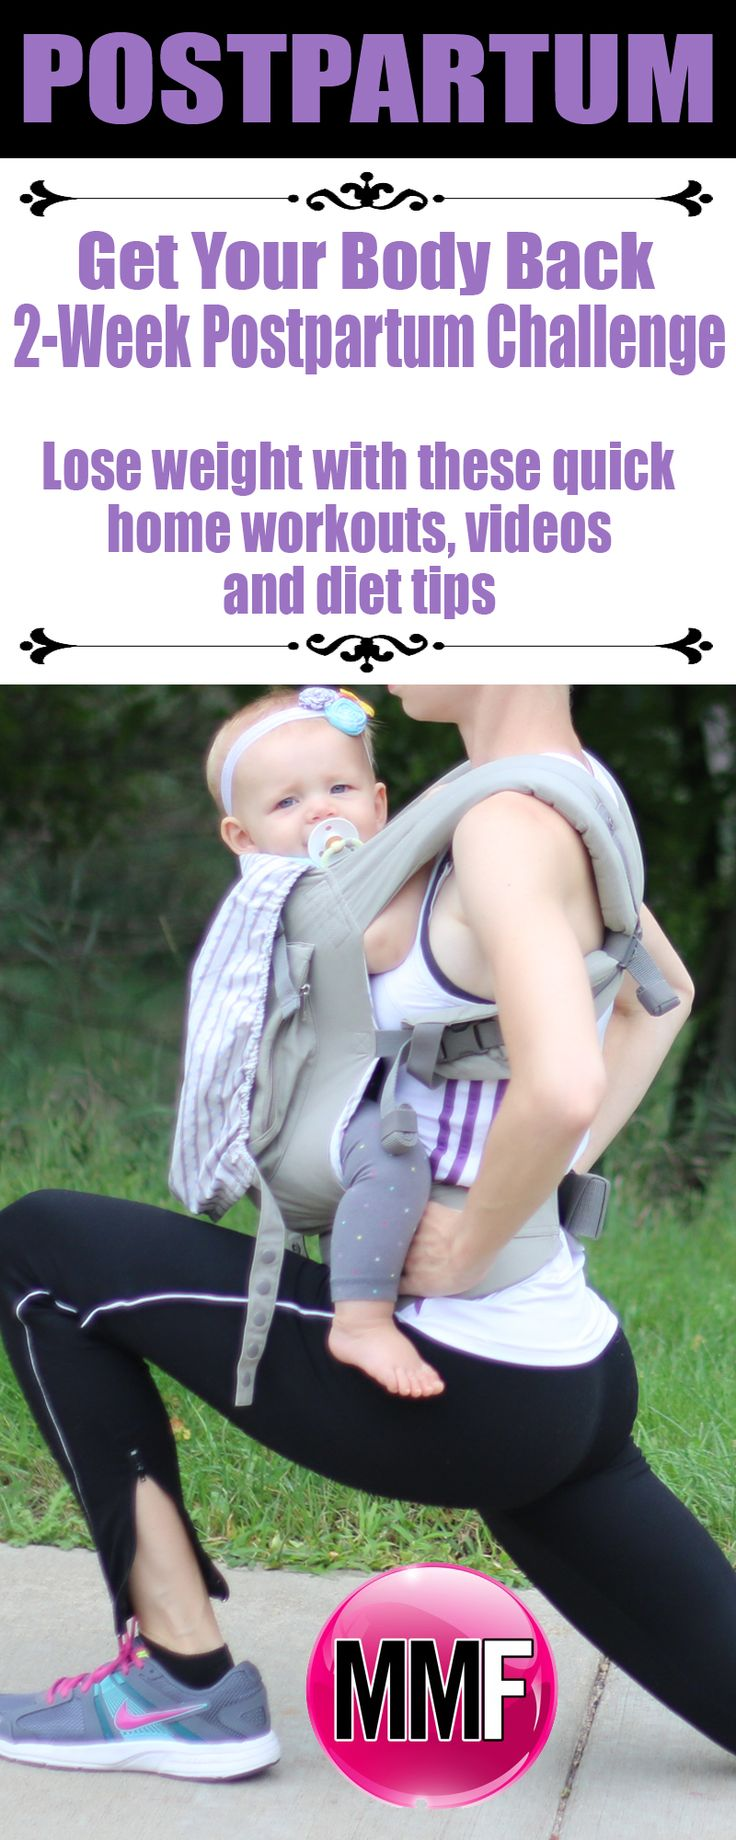 How To Lose Your Baby Weight 2-Week Workout Plan  Get Fit,Healthy & Confident Again!  Quick Home Workouts & Diet Tips* {Even if nursing}